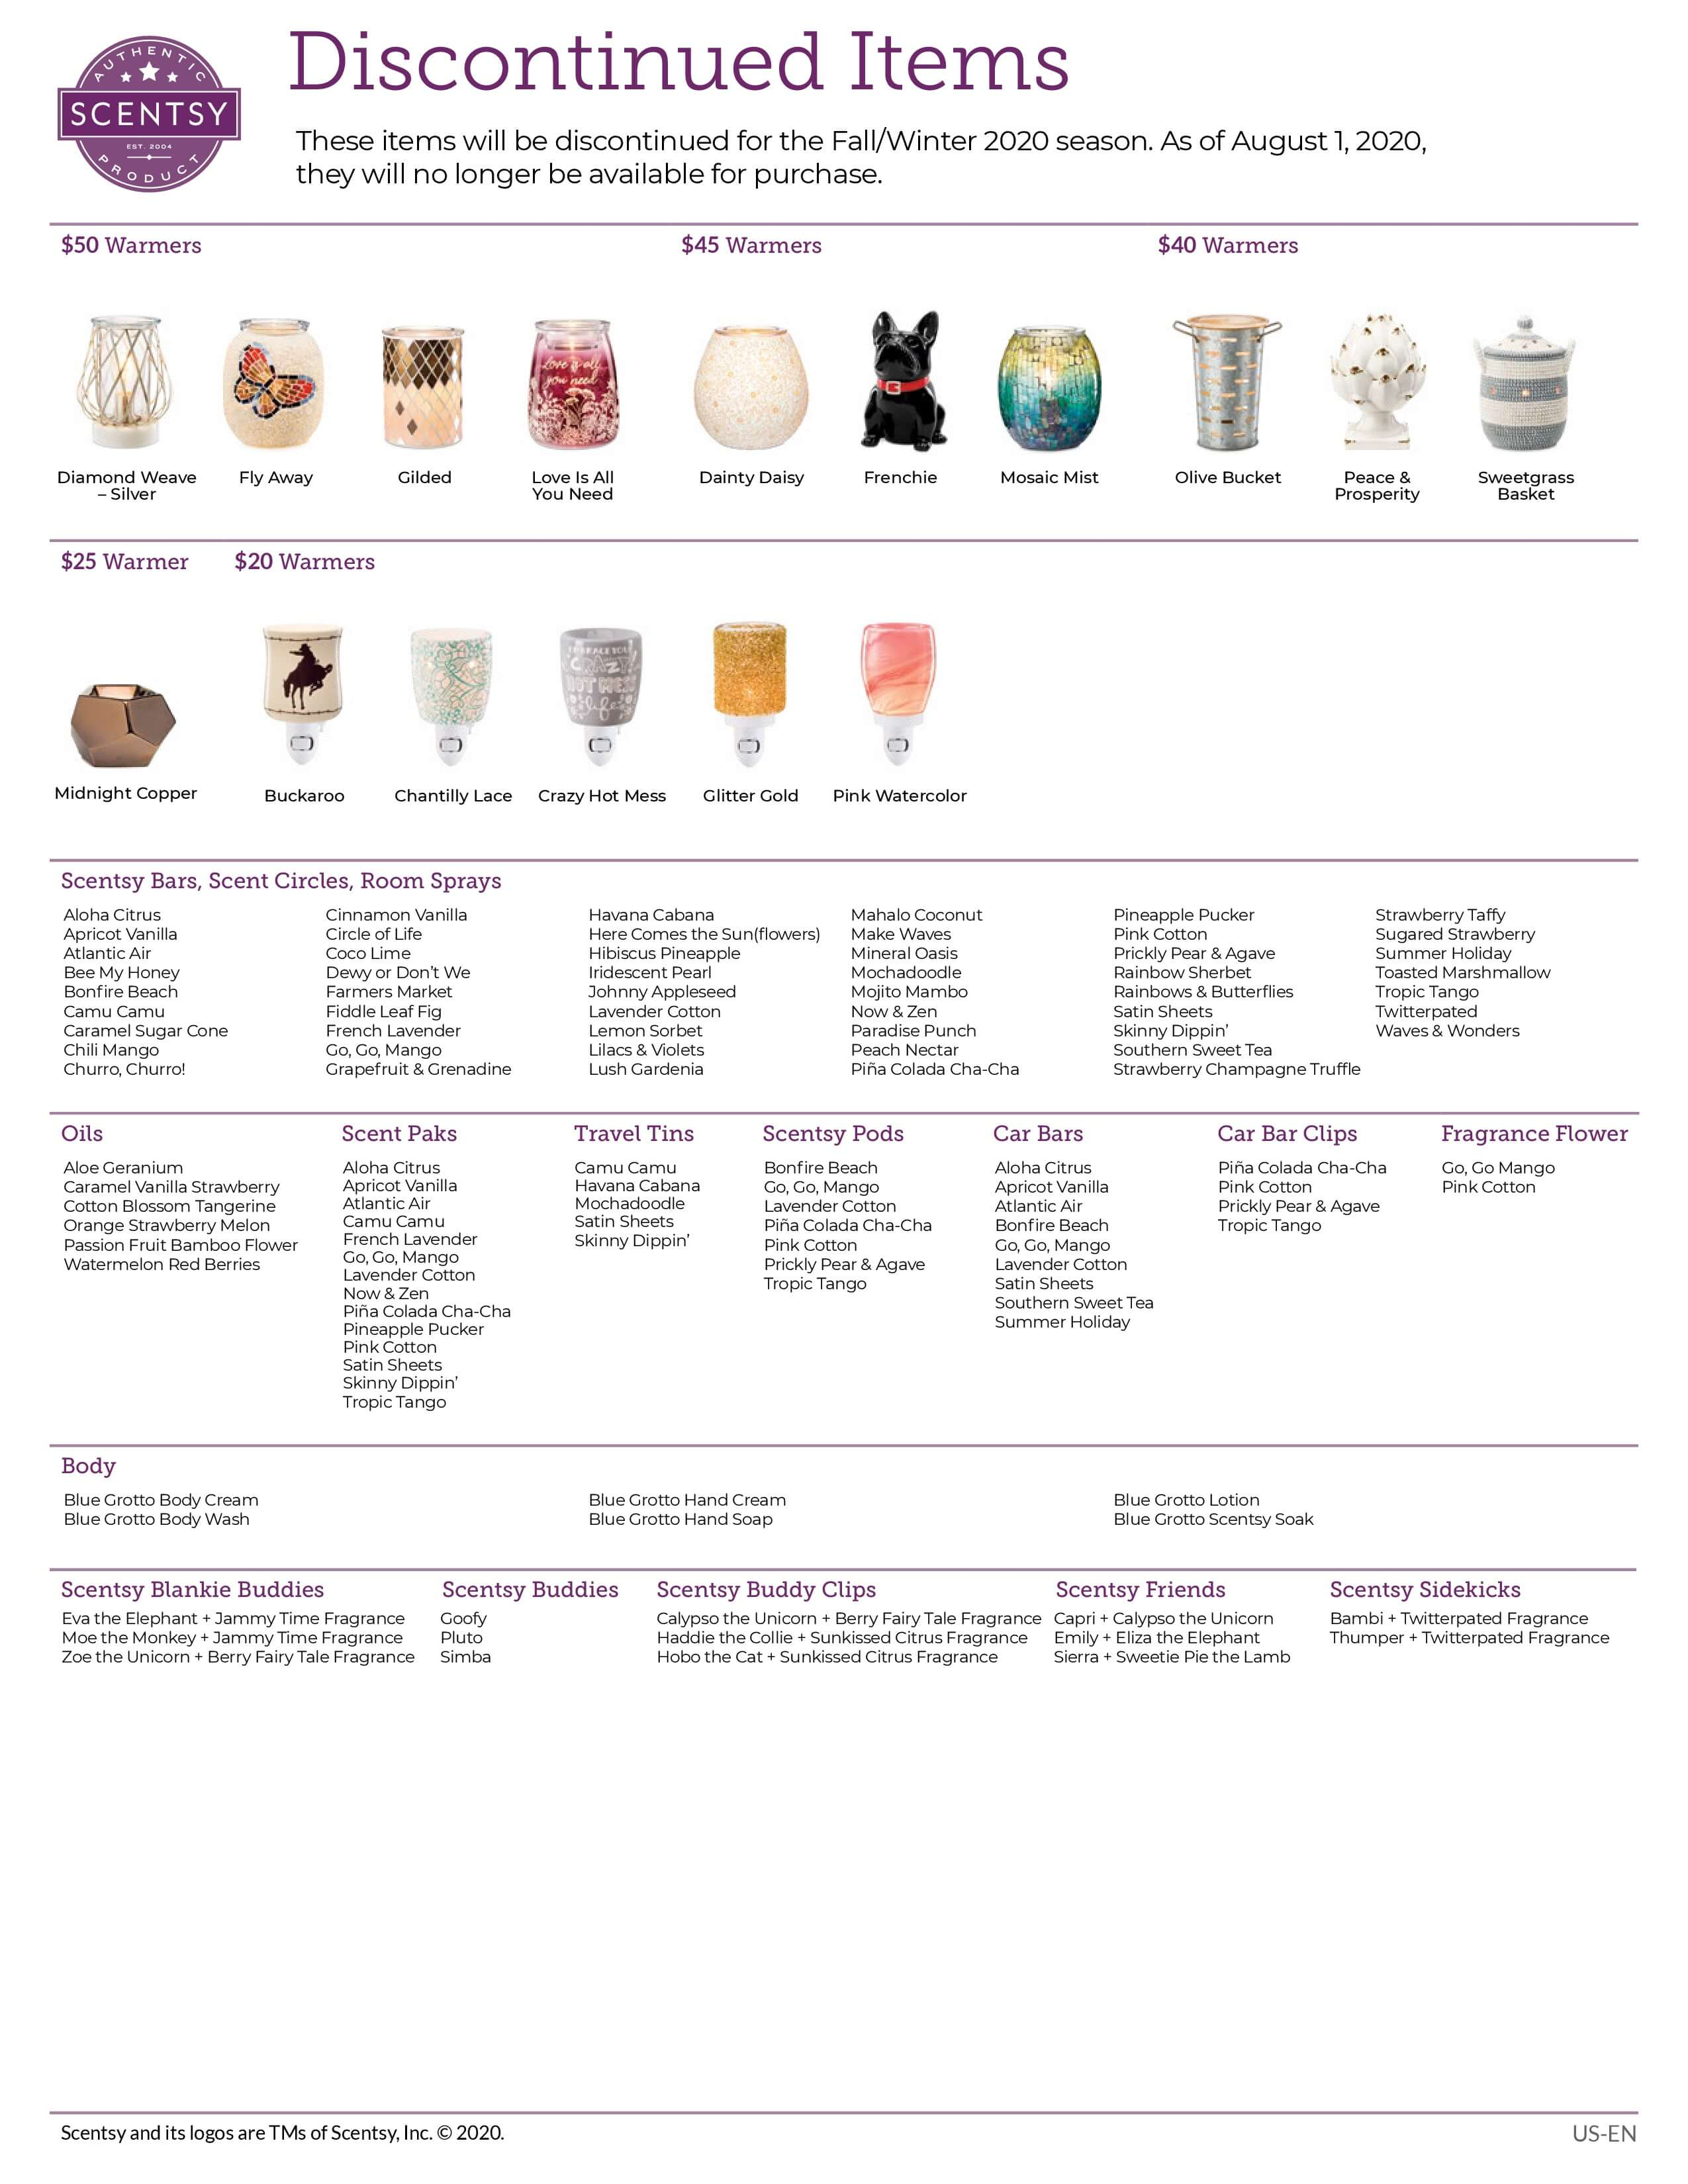 SCENTSY DISCONTINUED FALL 2020